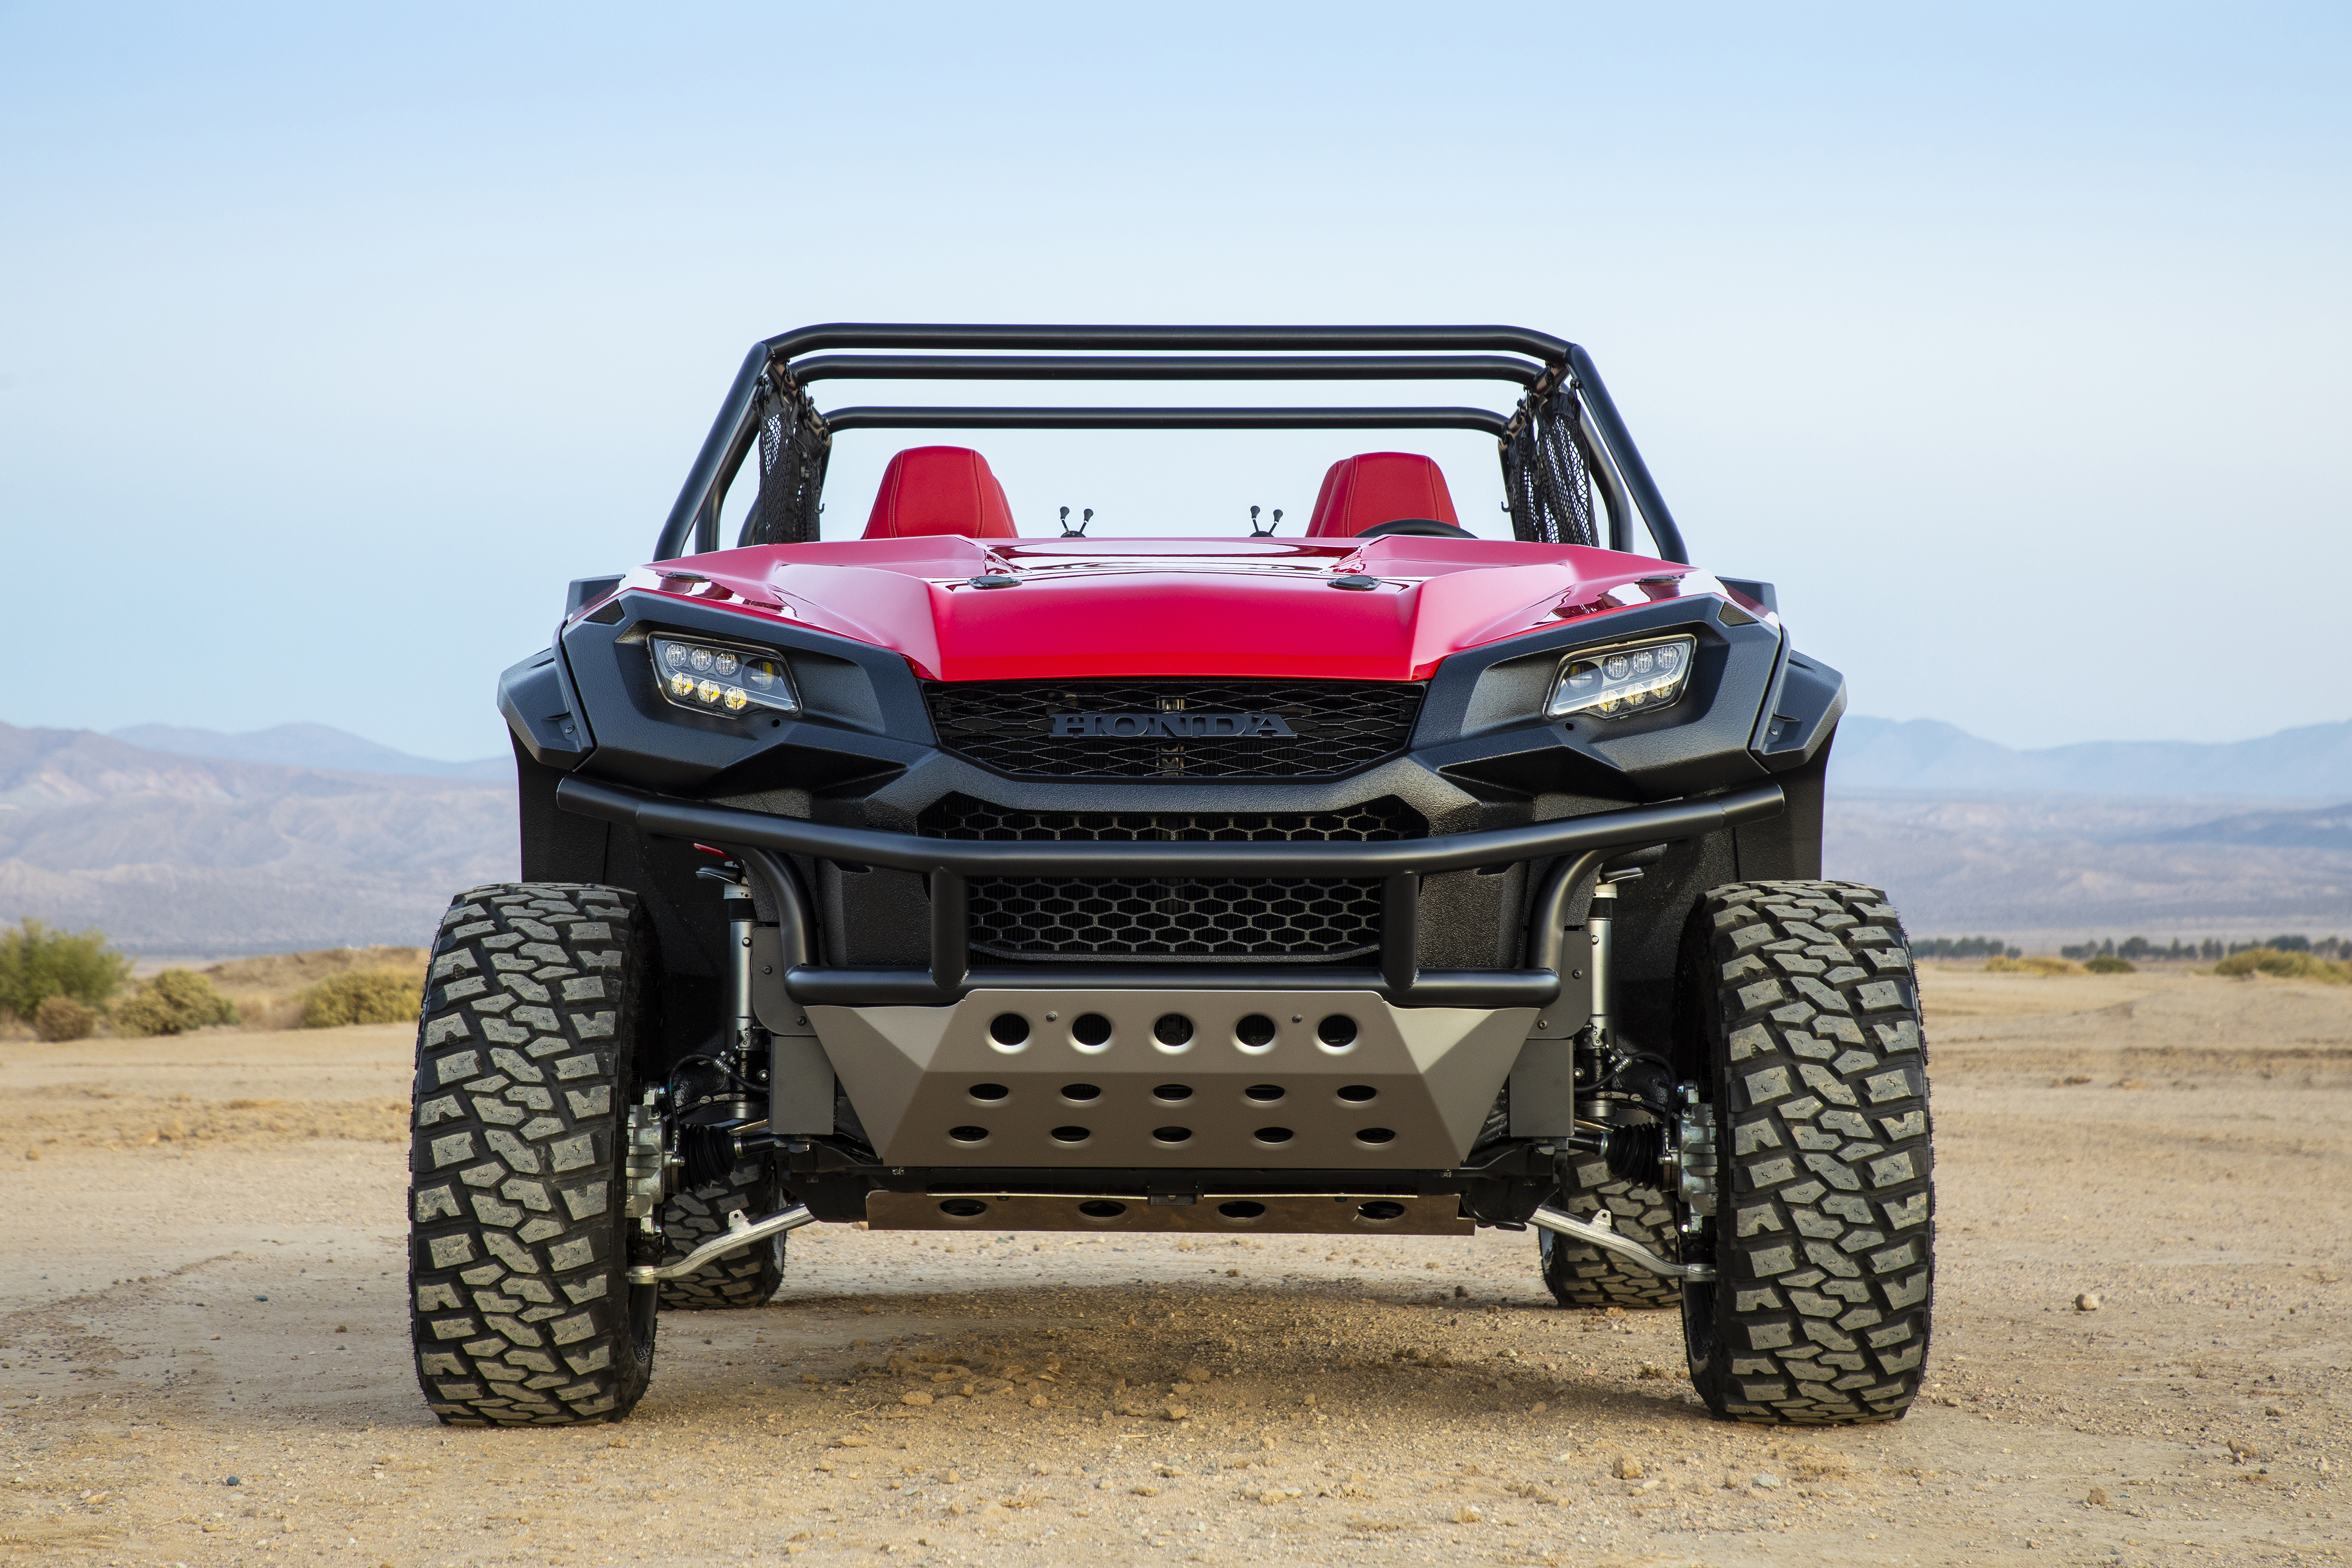 Honda Rugged Open-Air Vehicle Concept: SEMA Show featured image large thumb4